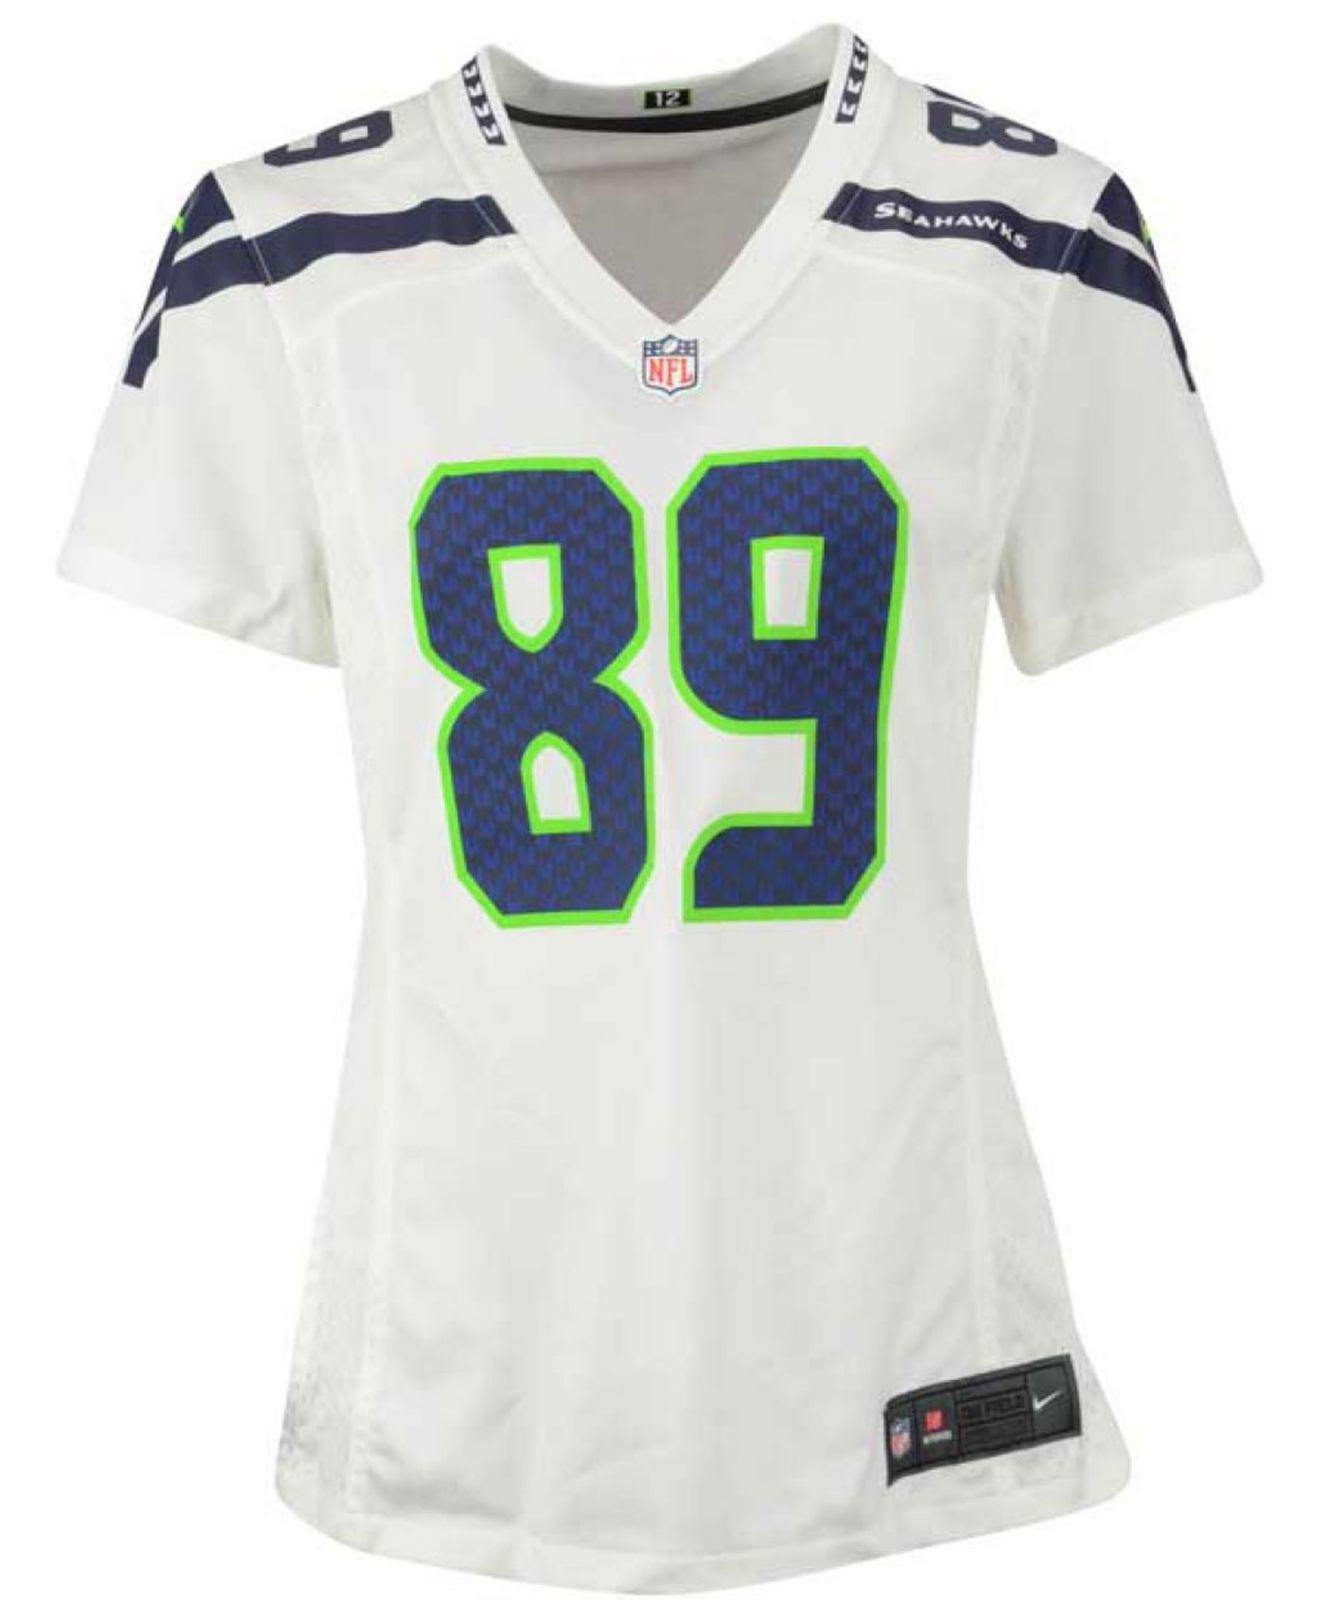 5faa1ab2f6b ... stitched nfl elite split jersey 7b381 99737  new zealand lyst nike  womens doug baldwin seattle seahawks game jersey in white 9411b f6c0a